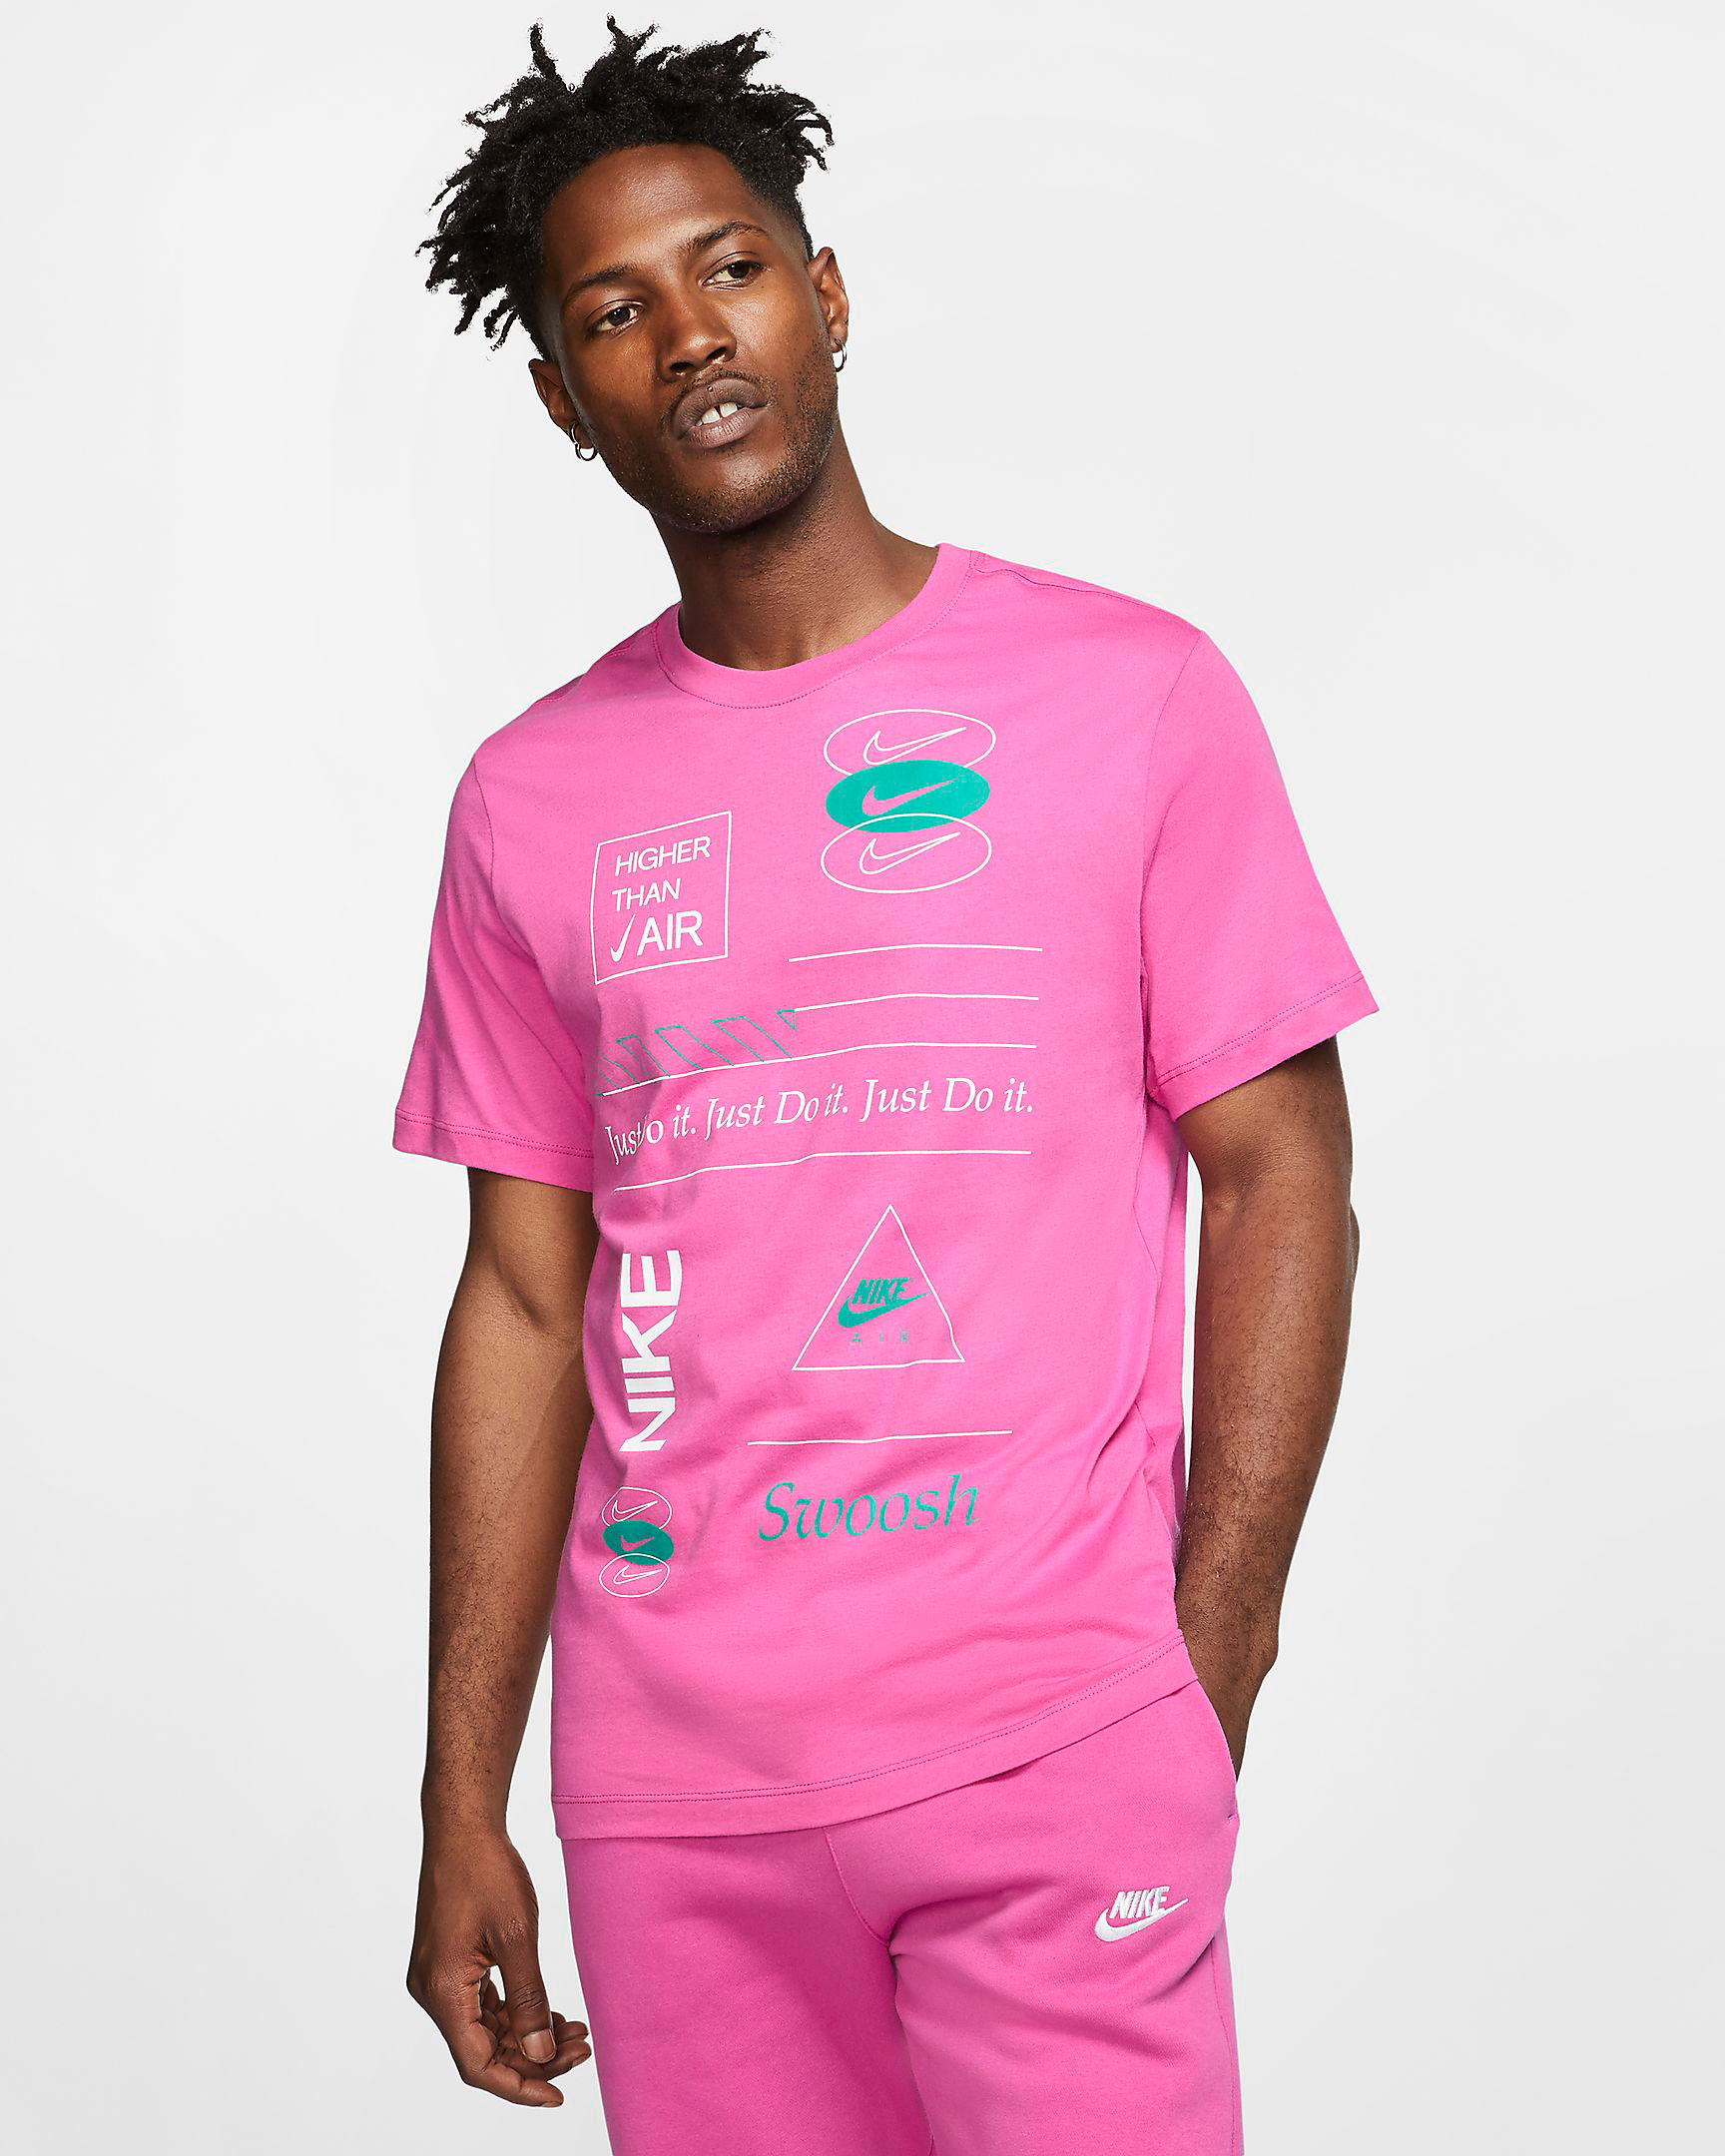 nike-sportswear-jdi-just-do-it-shirt-pink